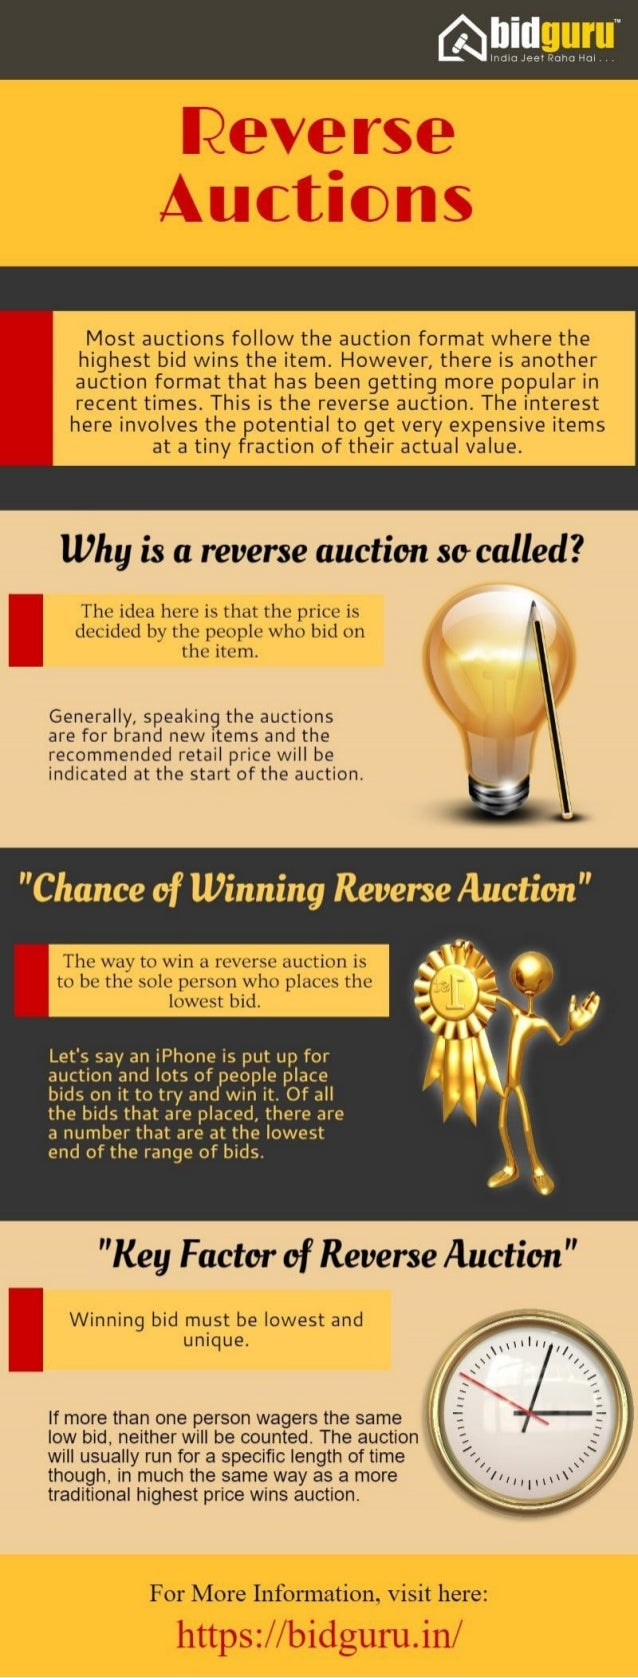 What is a reverse auction?